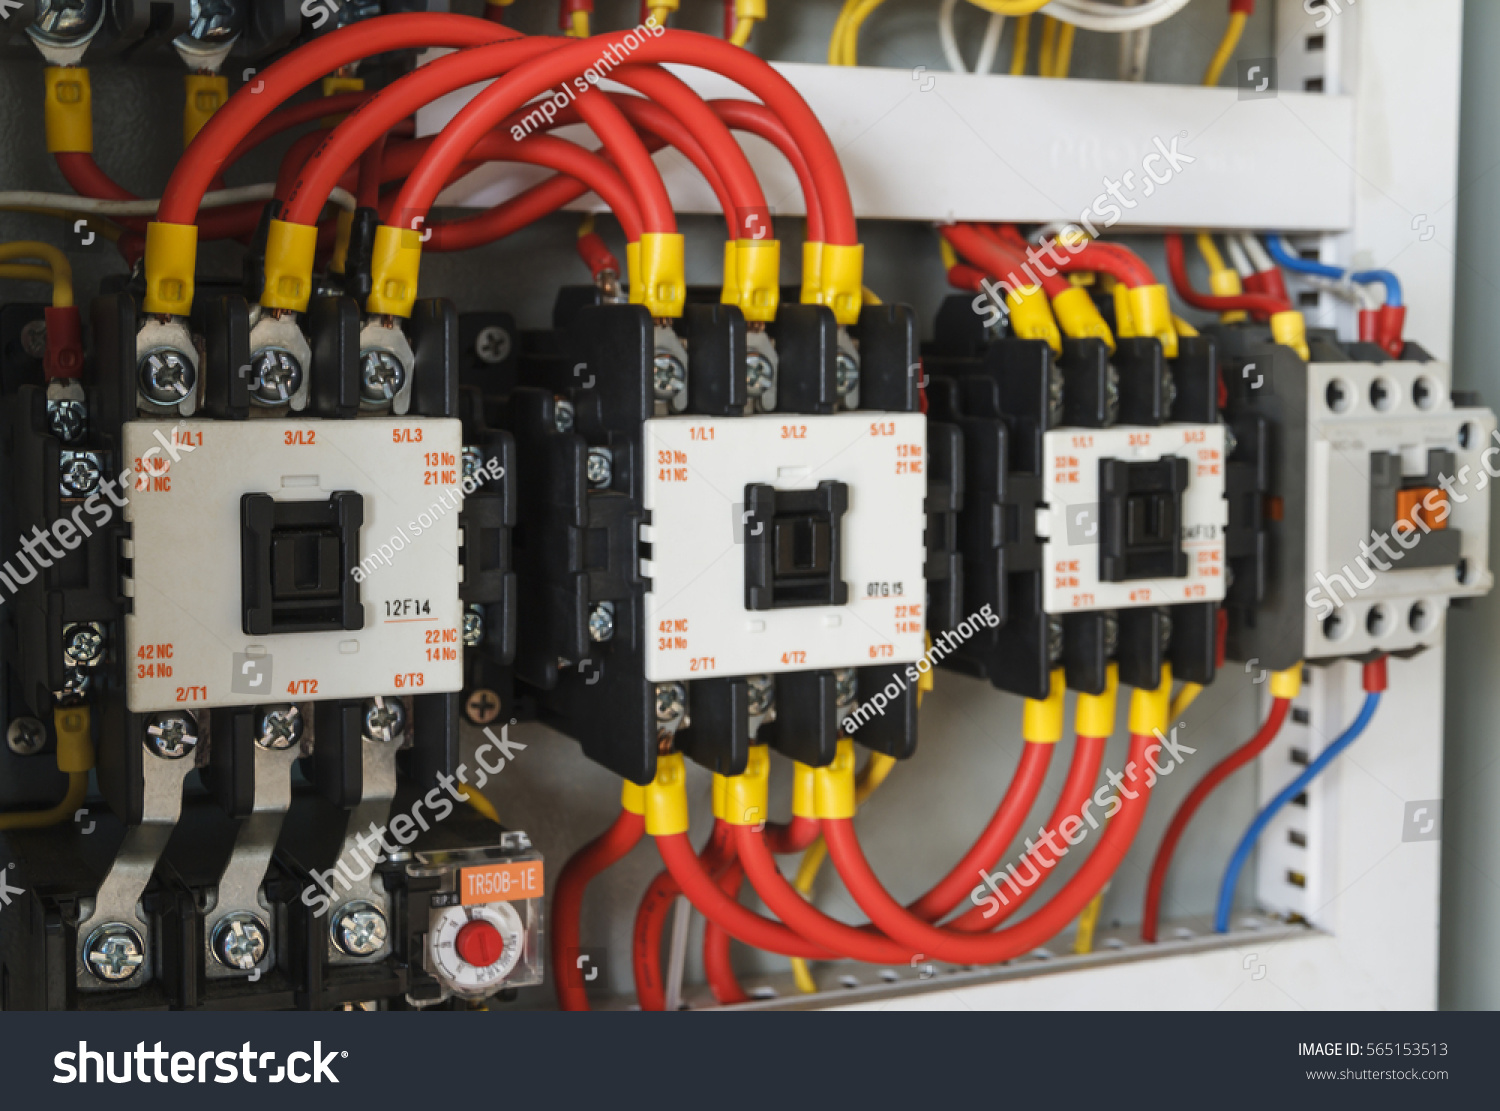 hight resolution of close up electrical wiring with fuses and contactors